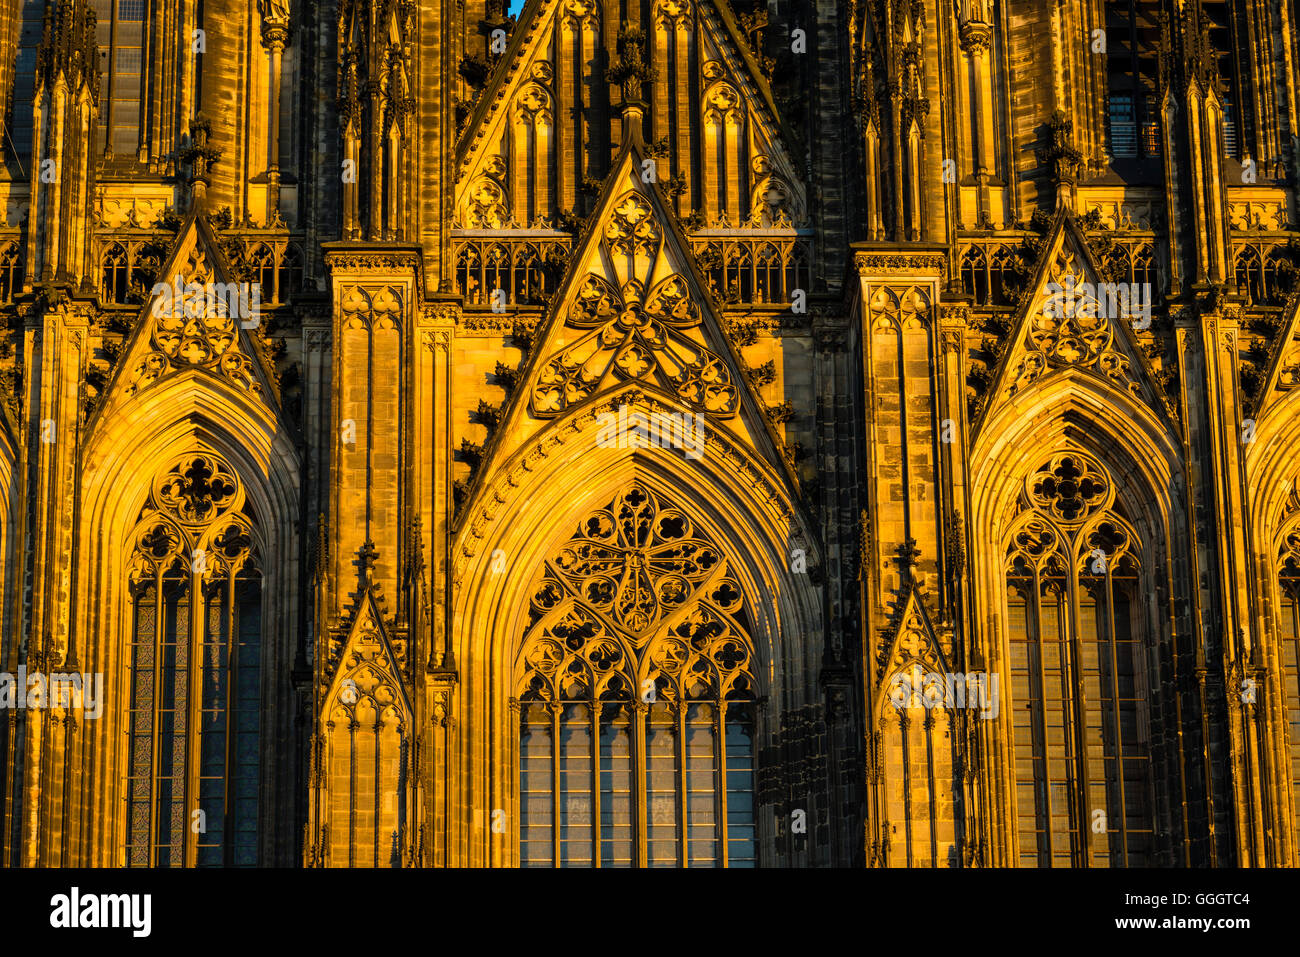 geography / travel, Germany, North Rhine-Westphalia, west facade, Cologne Cathedral, Cologne, Freedom-Of-Panorama - Stock Image